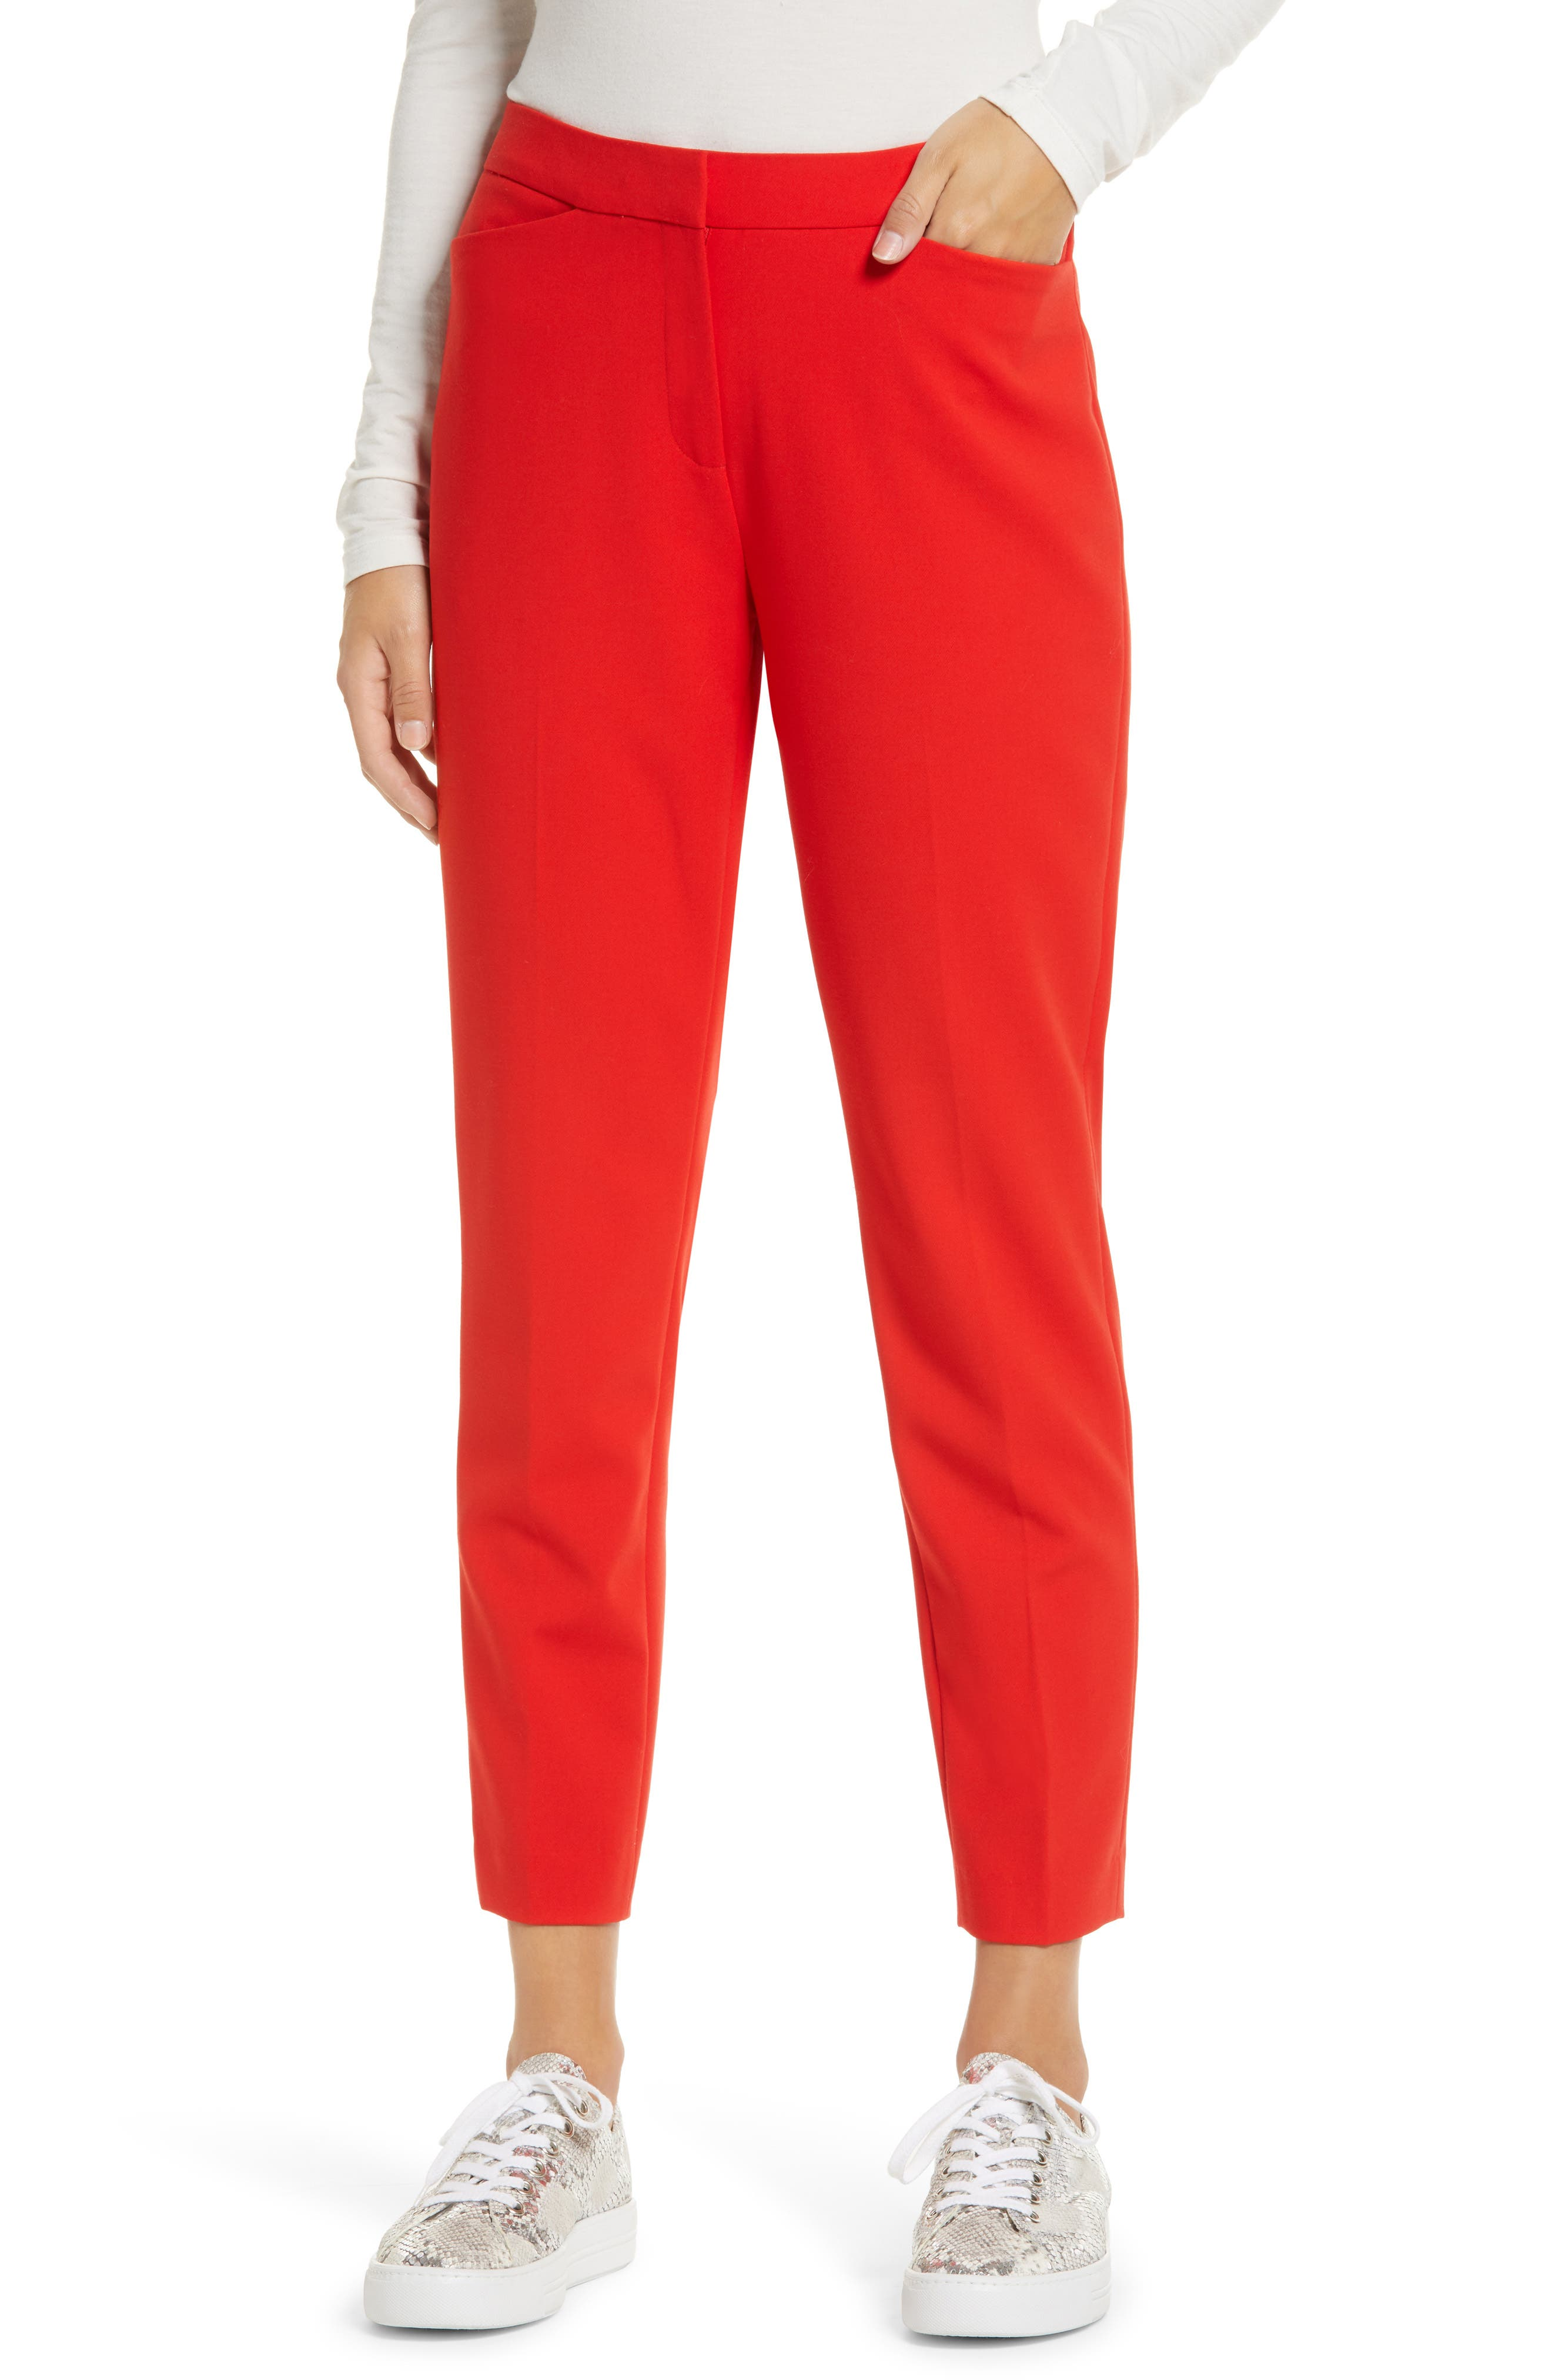 A sleek straight-leg cut, stretch fabric and slightly cropped fit make these pants must-haves for 9-to-5 and beyond. Style Name: Halogen Crop Straight Leg Pants (Regular & Petite). Style Number: 6011428. Available in stores.